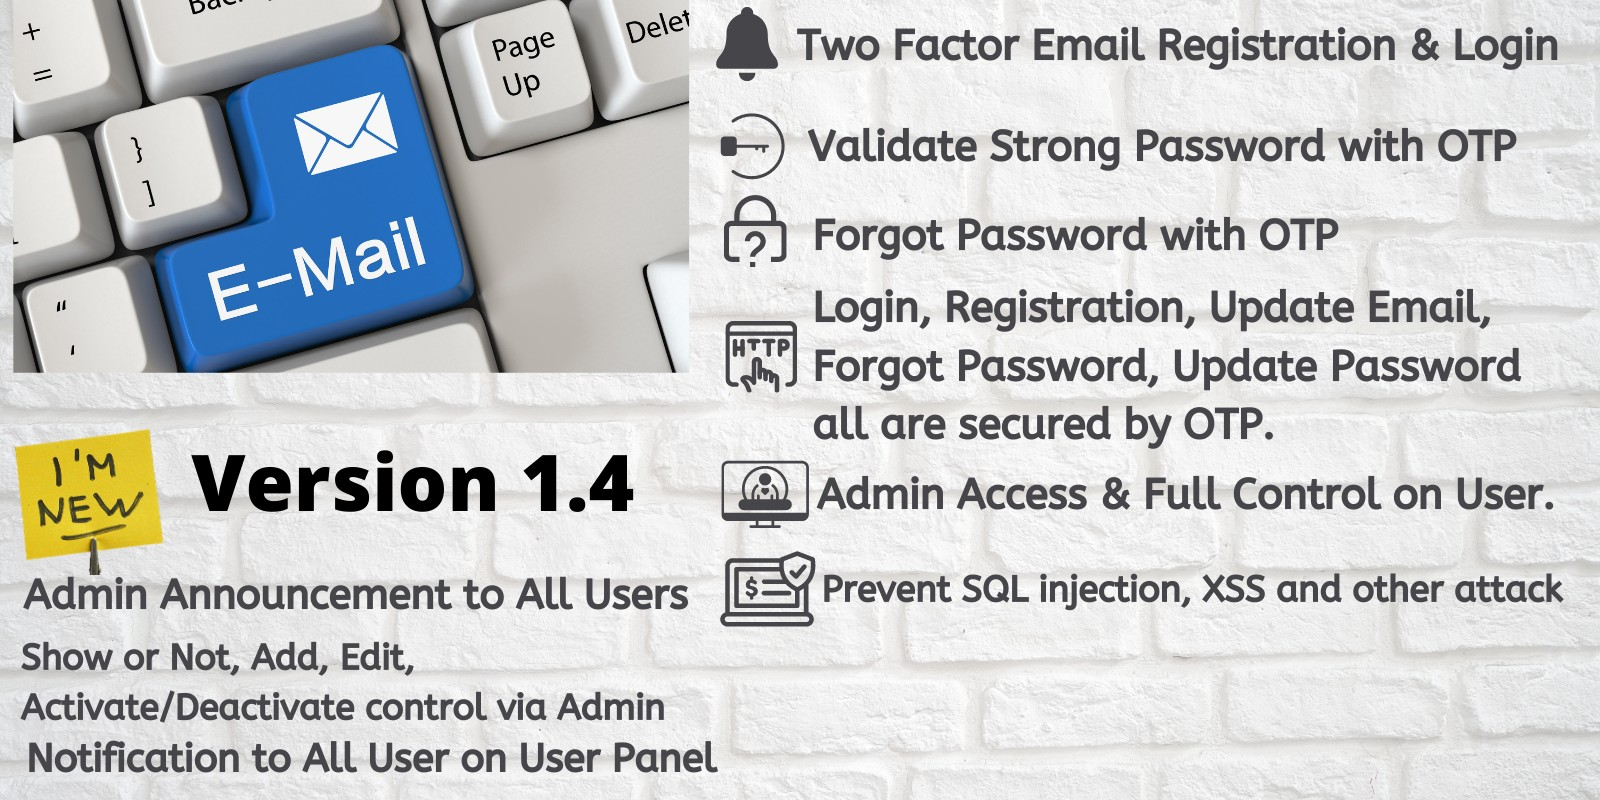 Twofactor Email Registration And Login With OTP